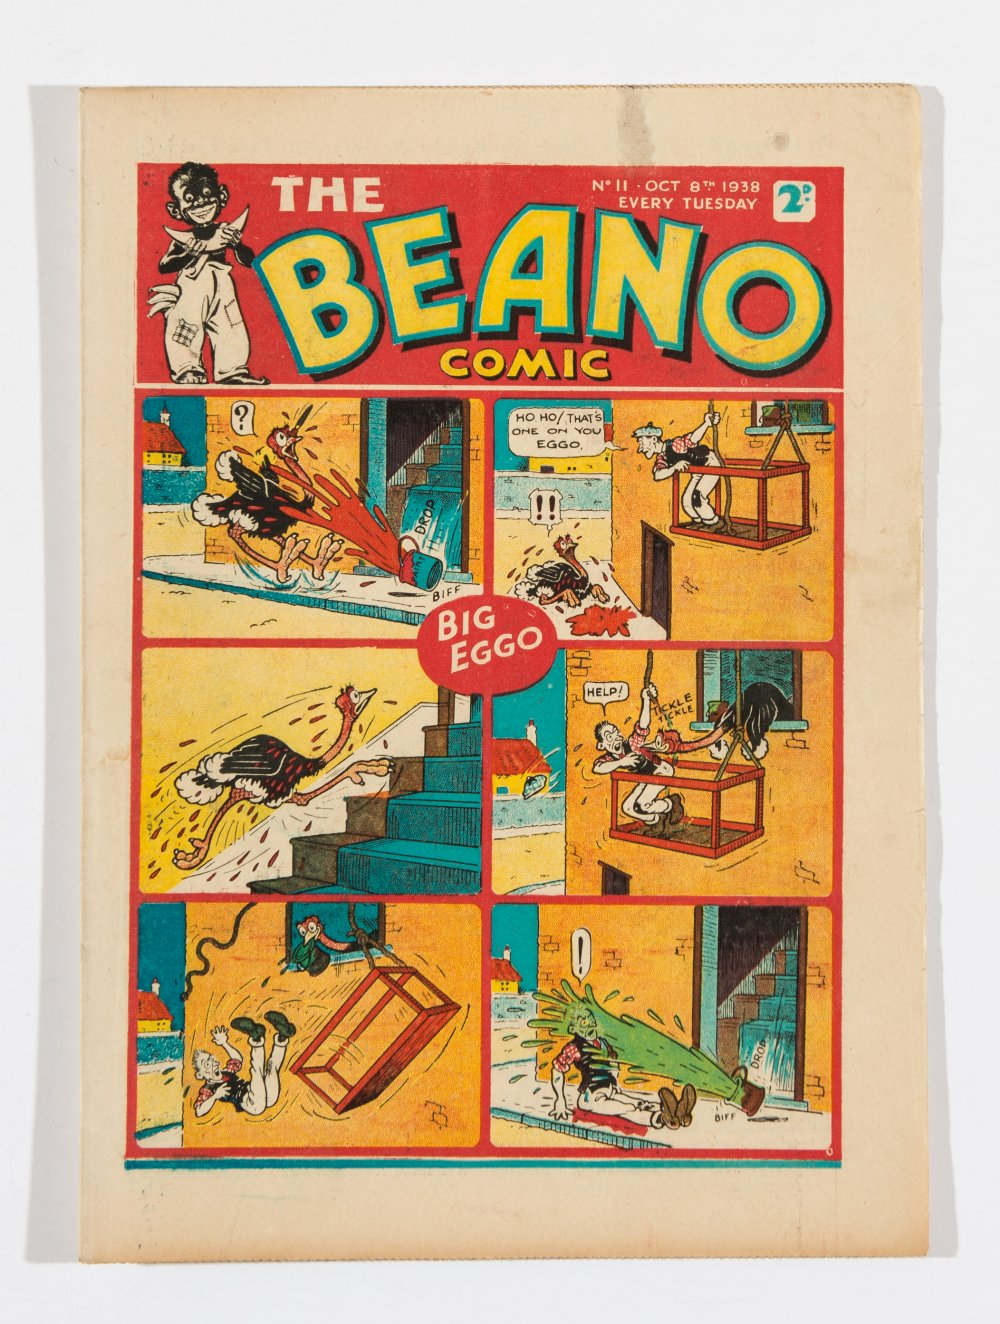 Lot 42 - Beano No 11 (1938). Bright, fresh covers, cream pages, 1 ins discolouration mark to top cover